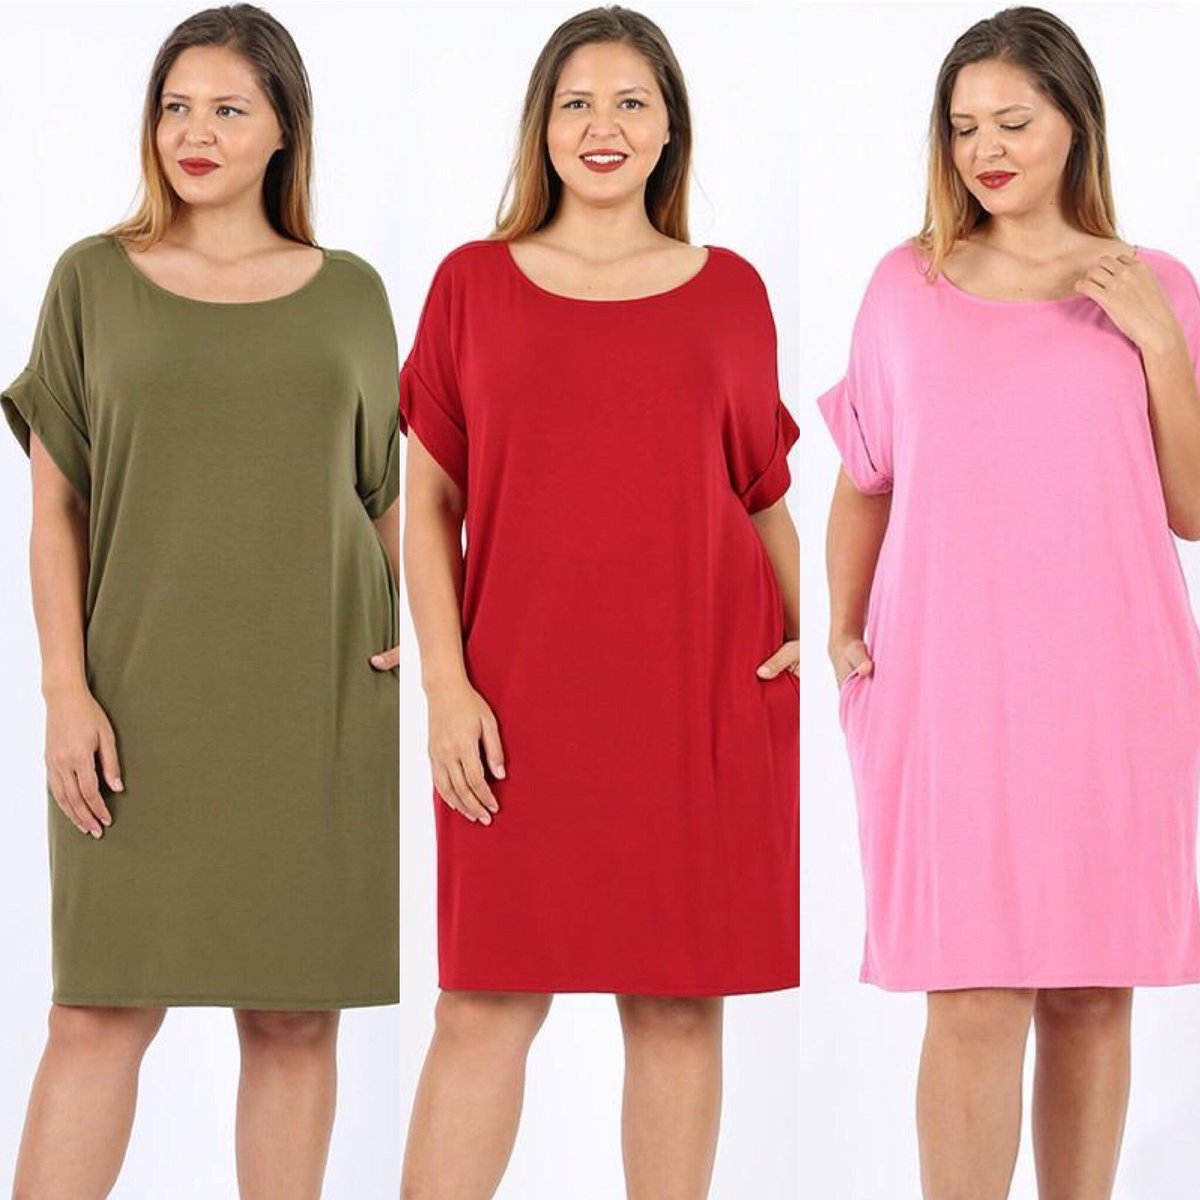 We are so thrilled to carry this darling favorite! Plus size T-shirt dress with pockets and rolled sleeves. 😍 $16.99 for a limited time.   https://t.co/G7xjA69J1e #plussize #tshirtdress #plussizefashion #SummerVibes https://t.co/hjyT96Biif